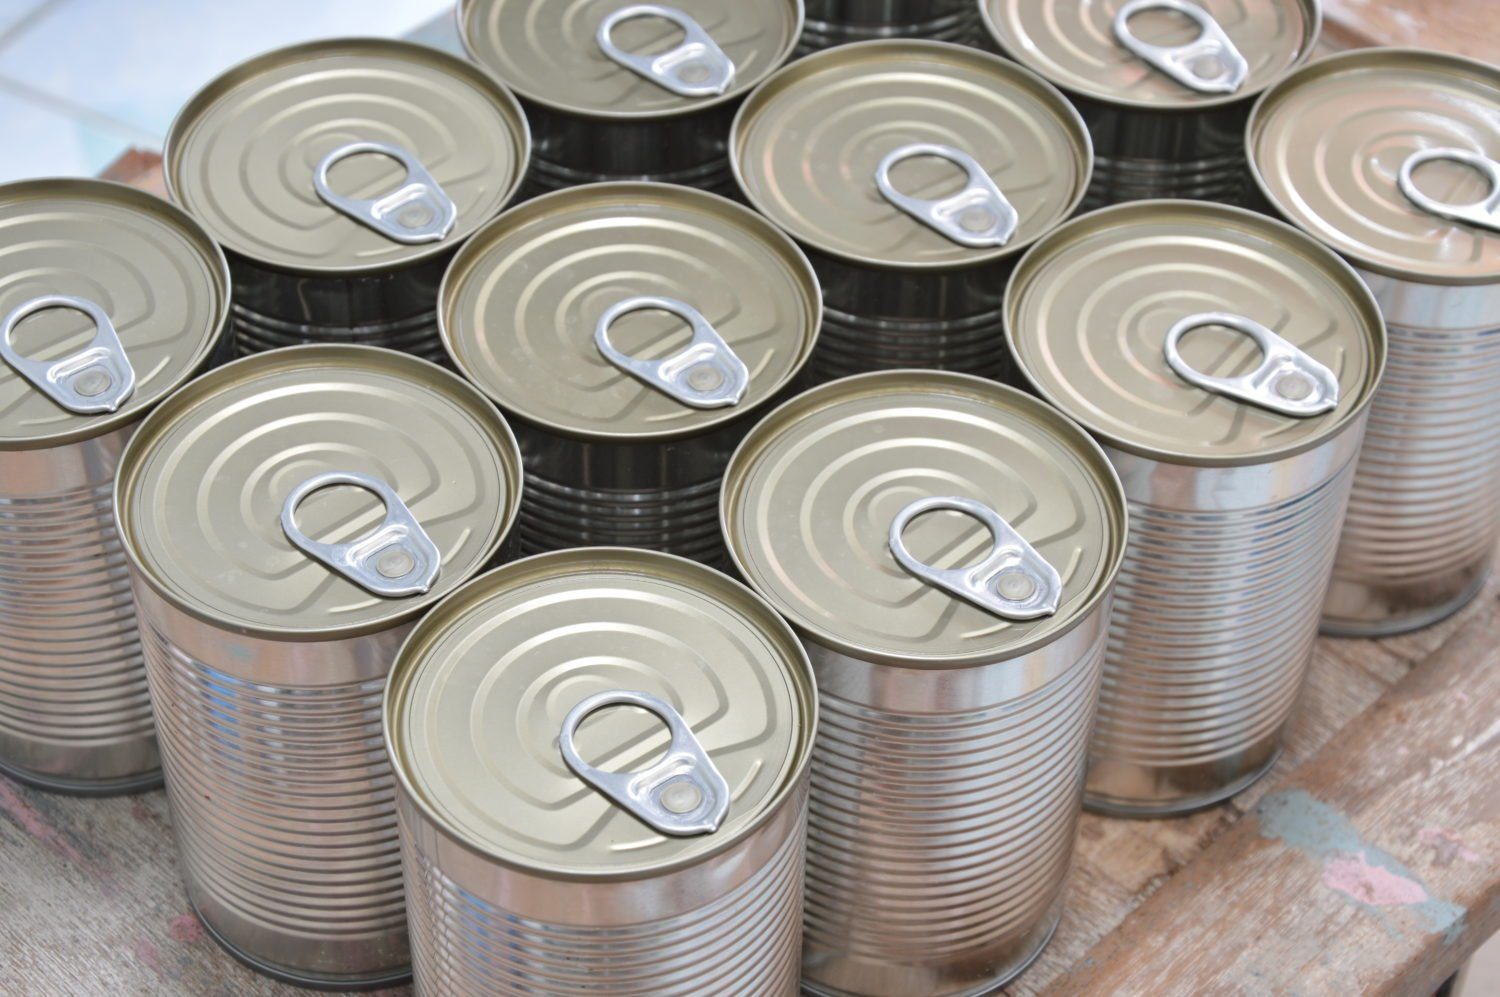 Canned Food In Ration Packs